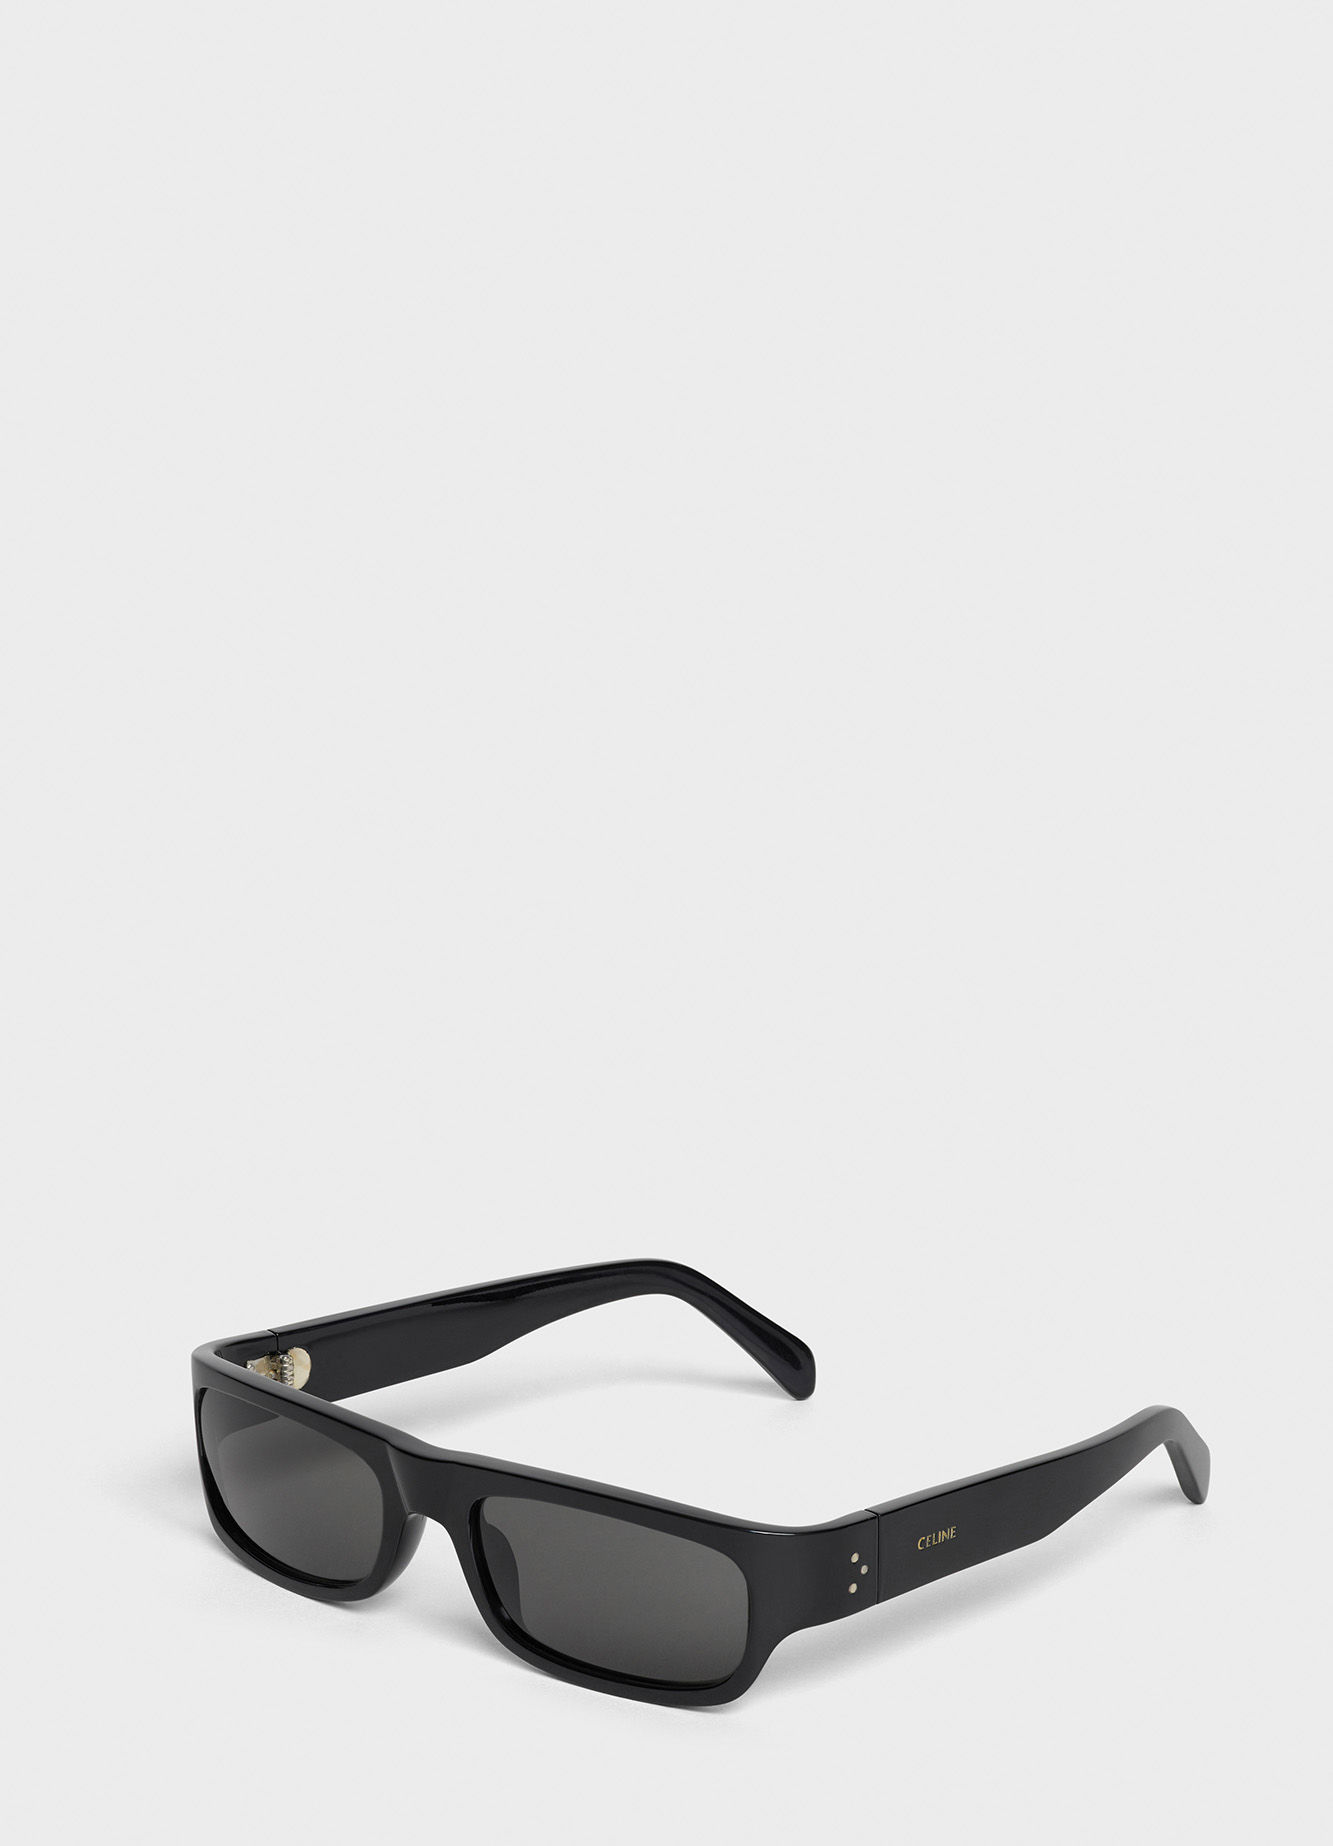 CELINE BLACK FRAME 03 SUNGLASSES IN ACETATE